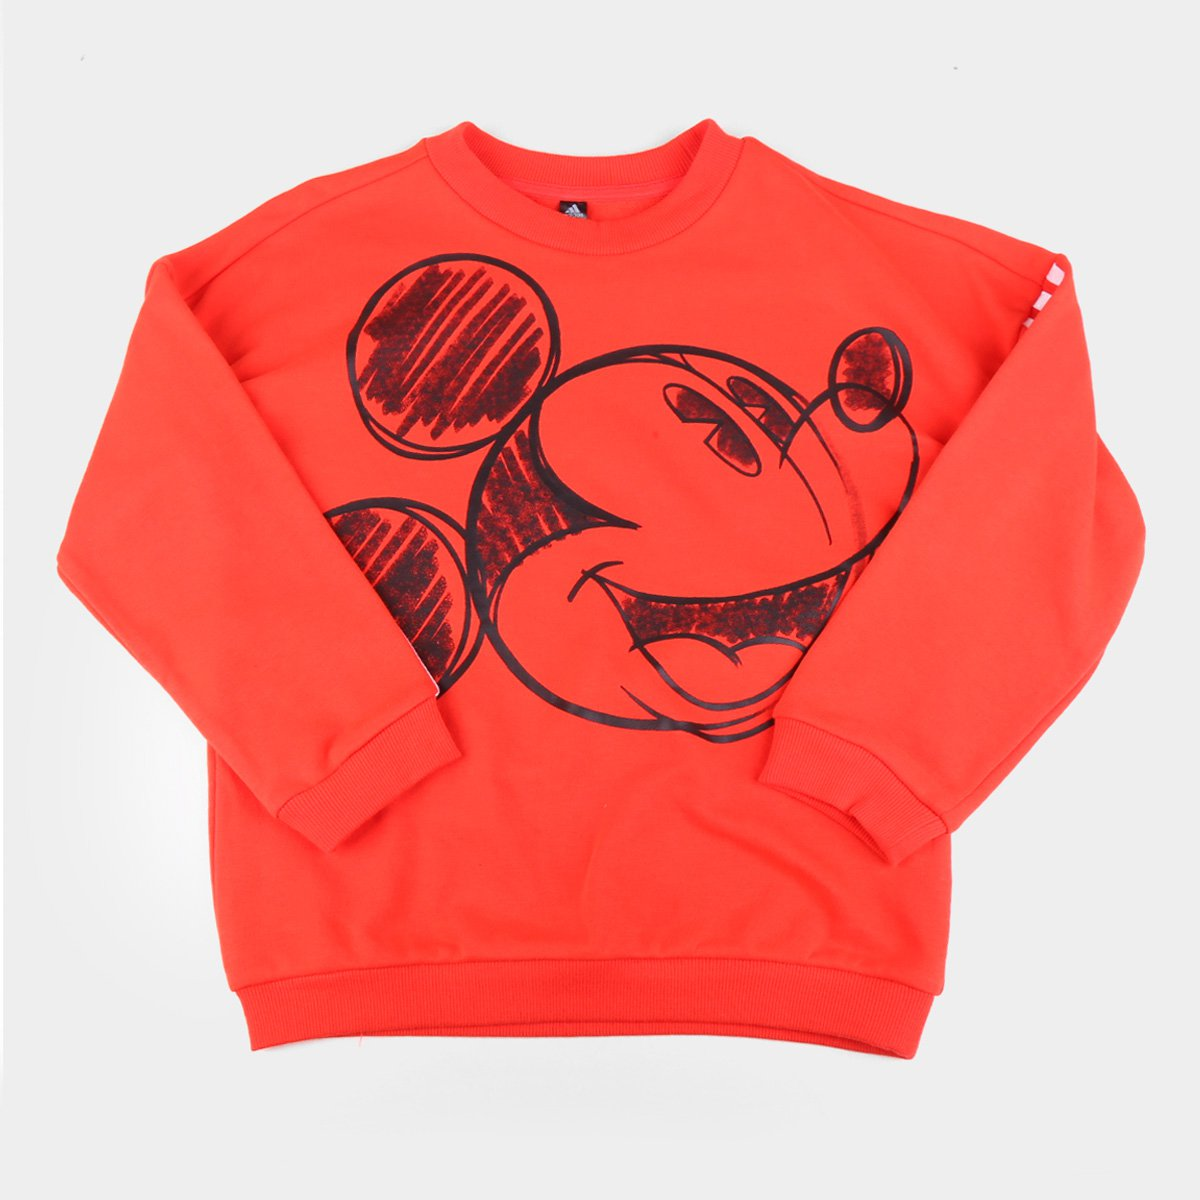 Moletom Infantil Adidas Mickey Mouse Crew Masculino